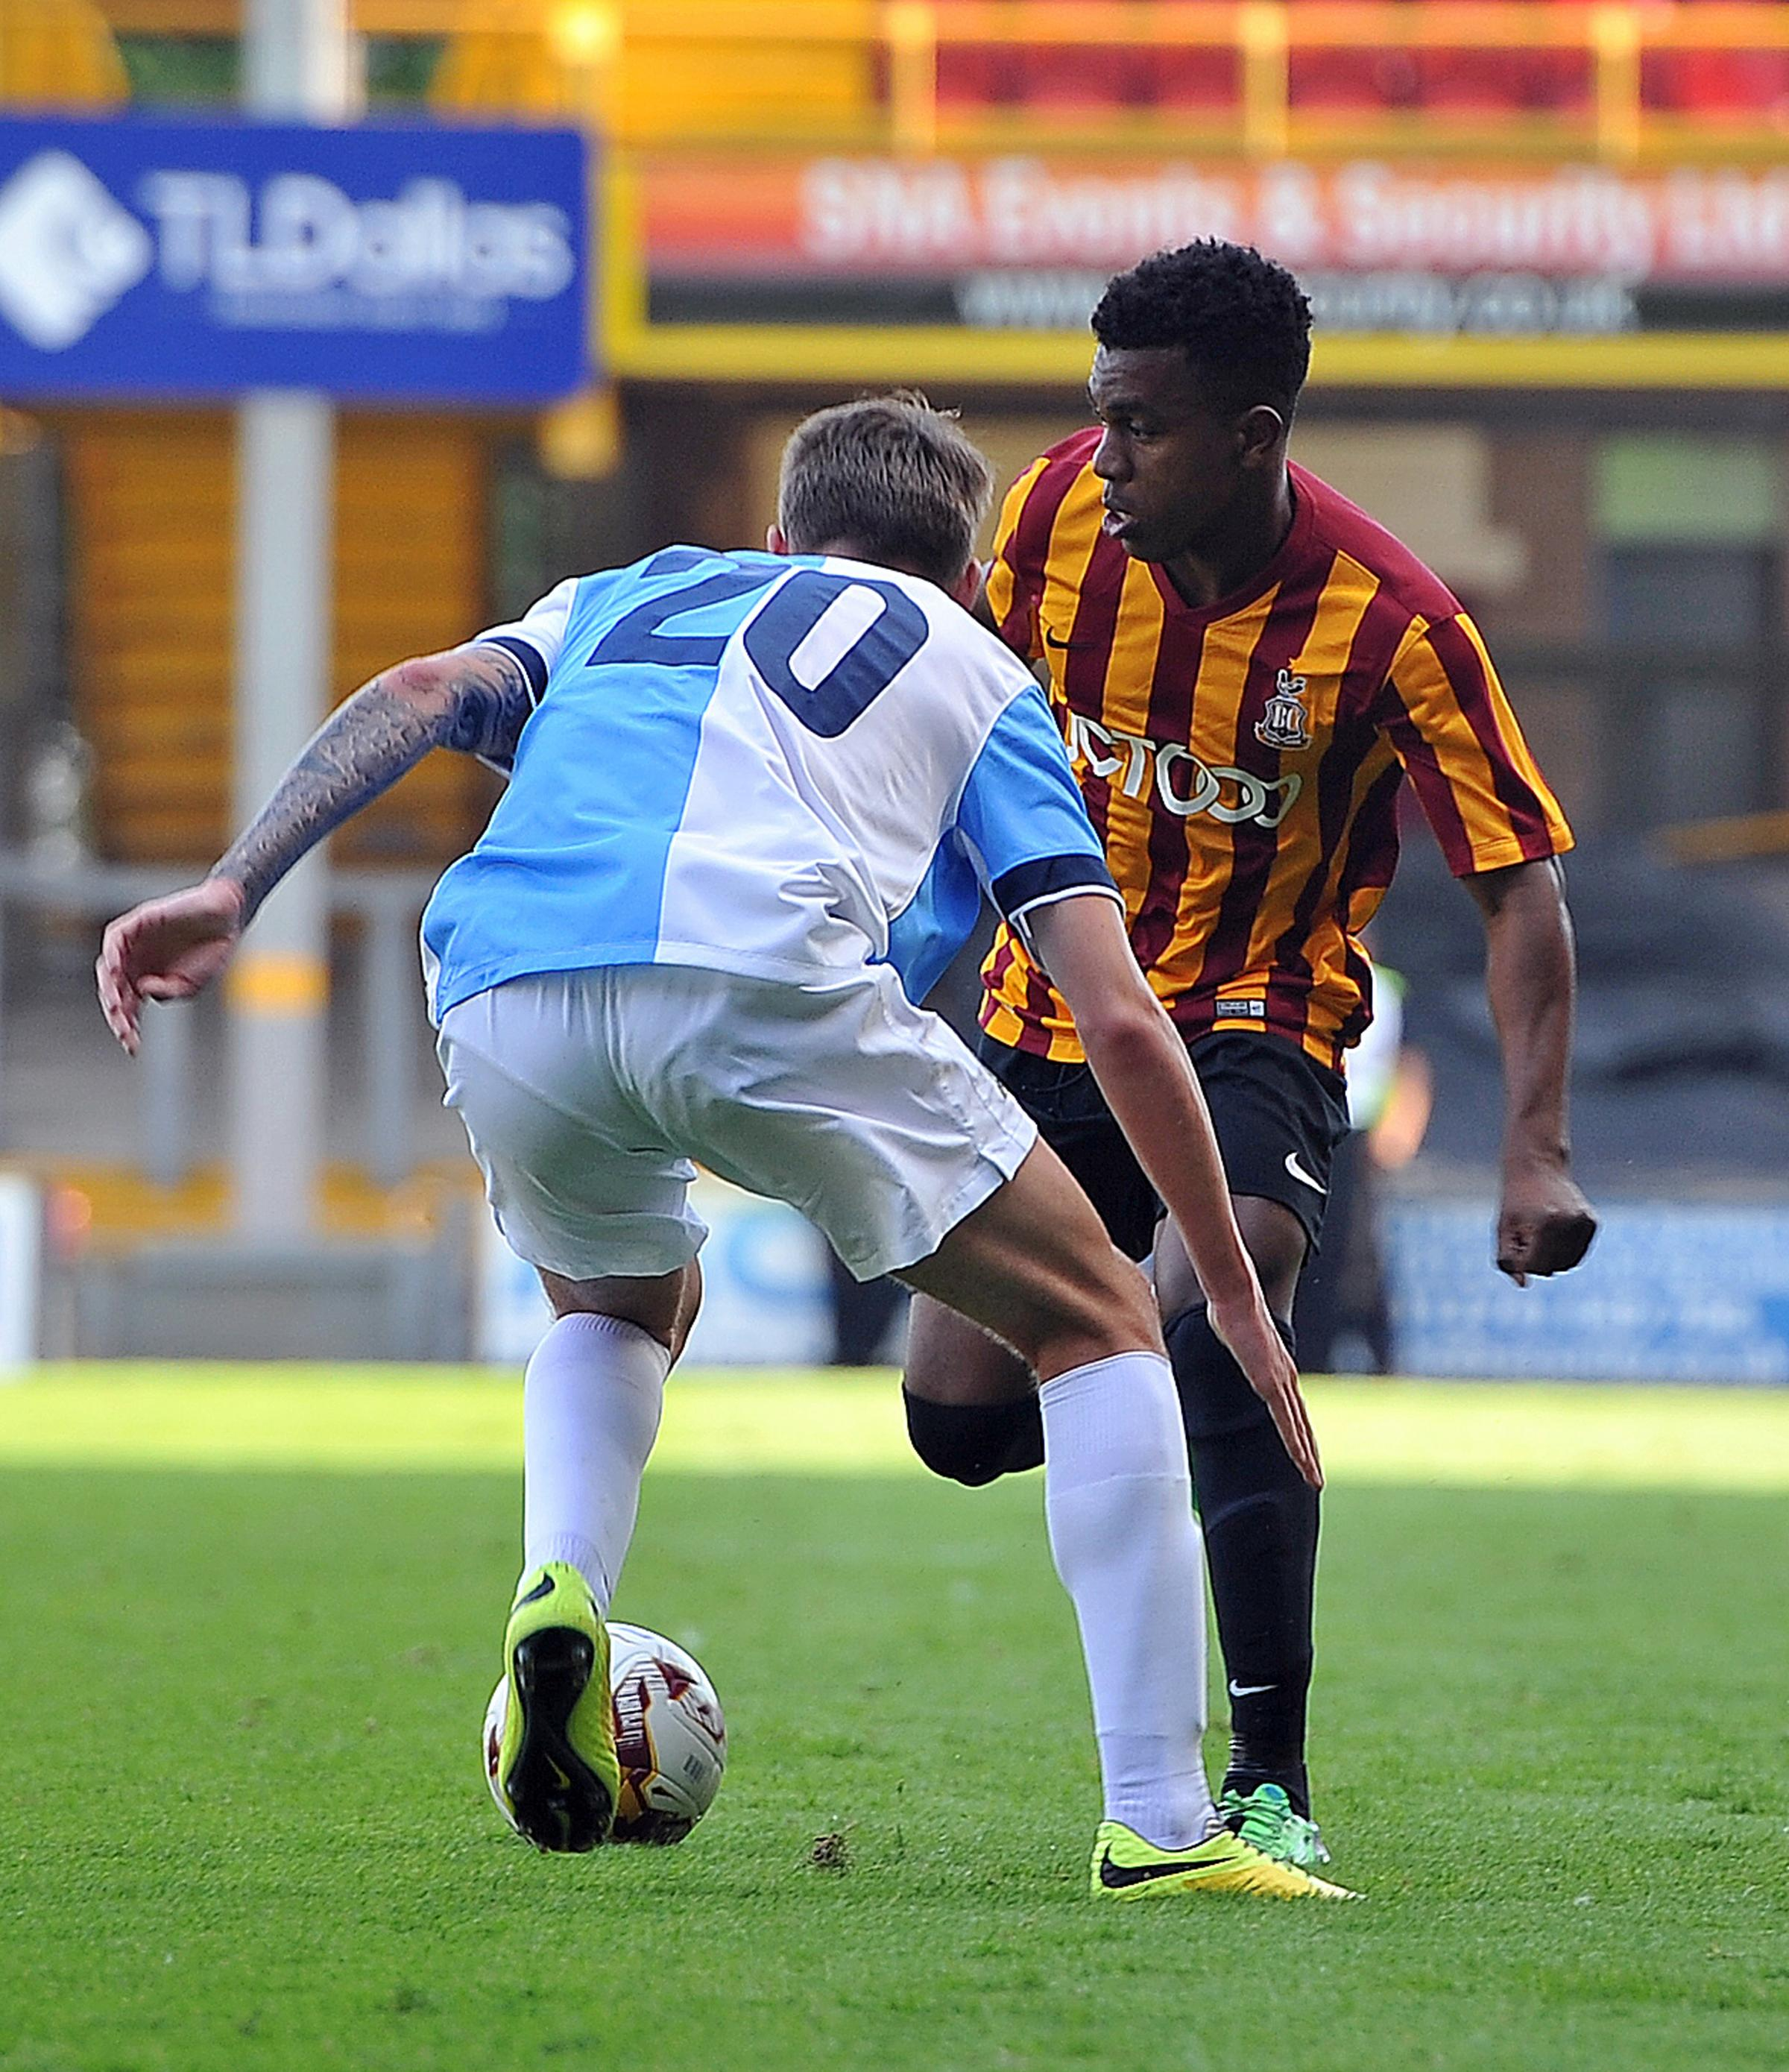 Bradford City trialists out to impress at Park Avenue